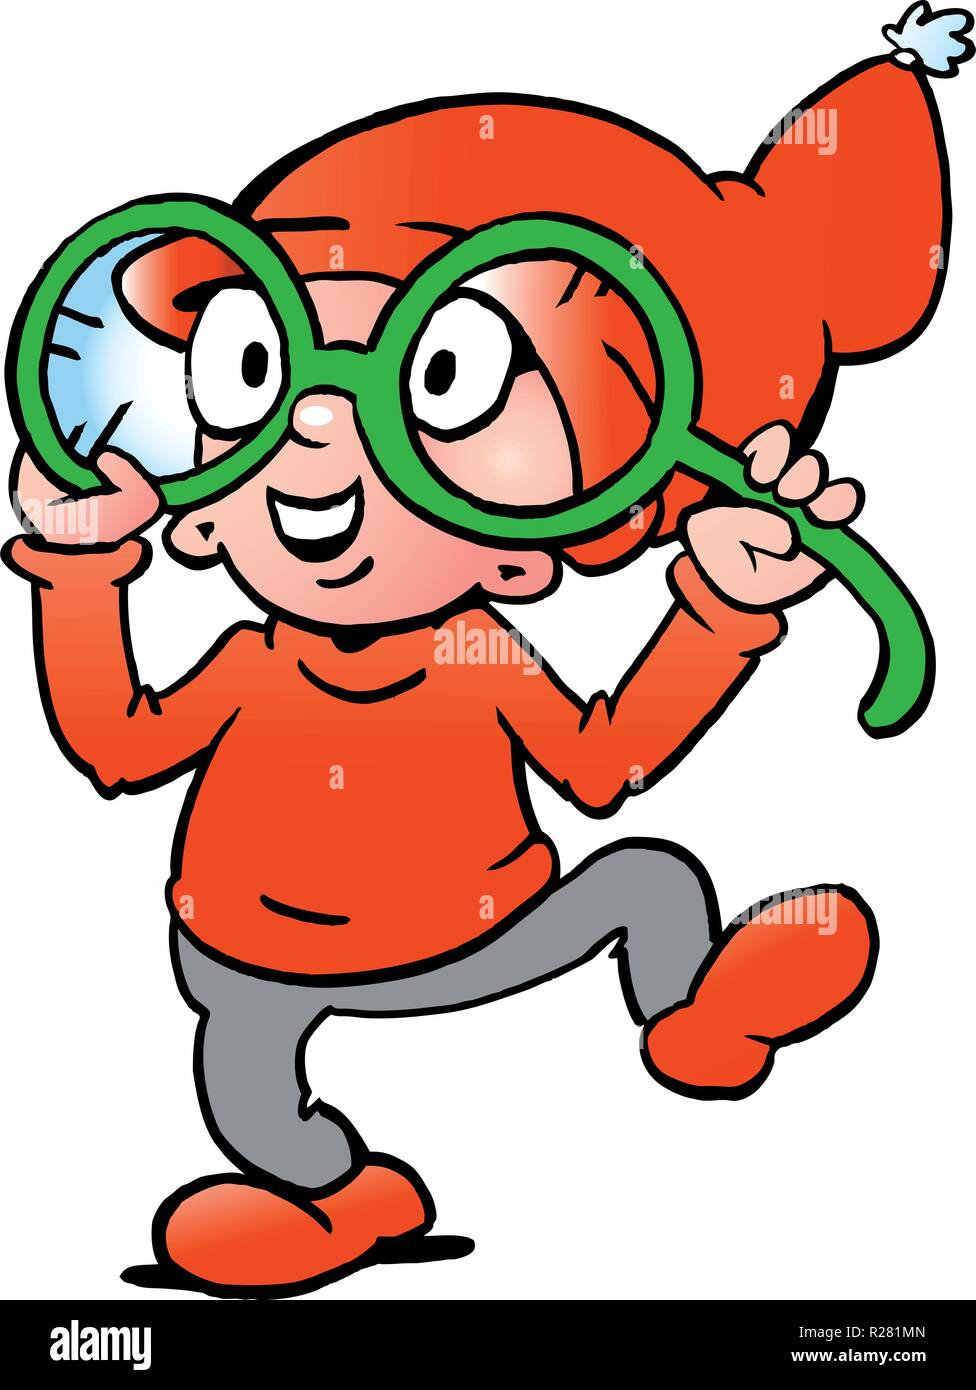 Hand-drawn Vector illustration of an Happy Christmas Elf  with big green glasses - Stock Vector